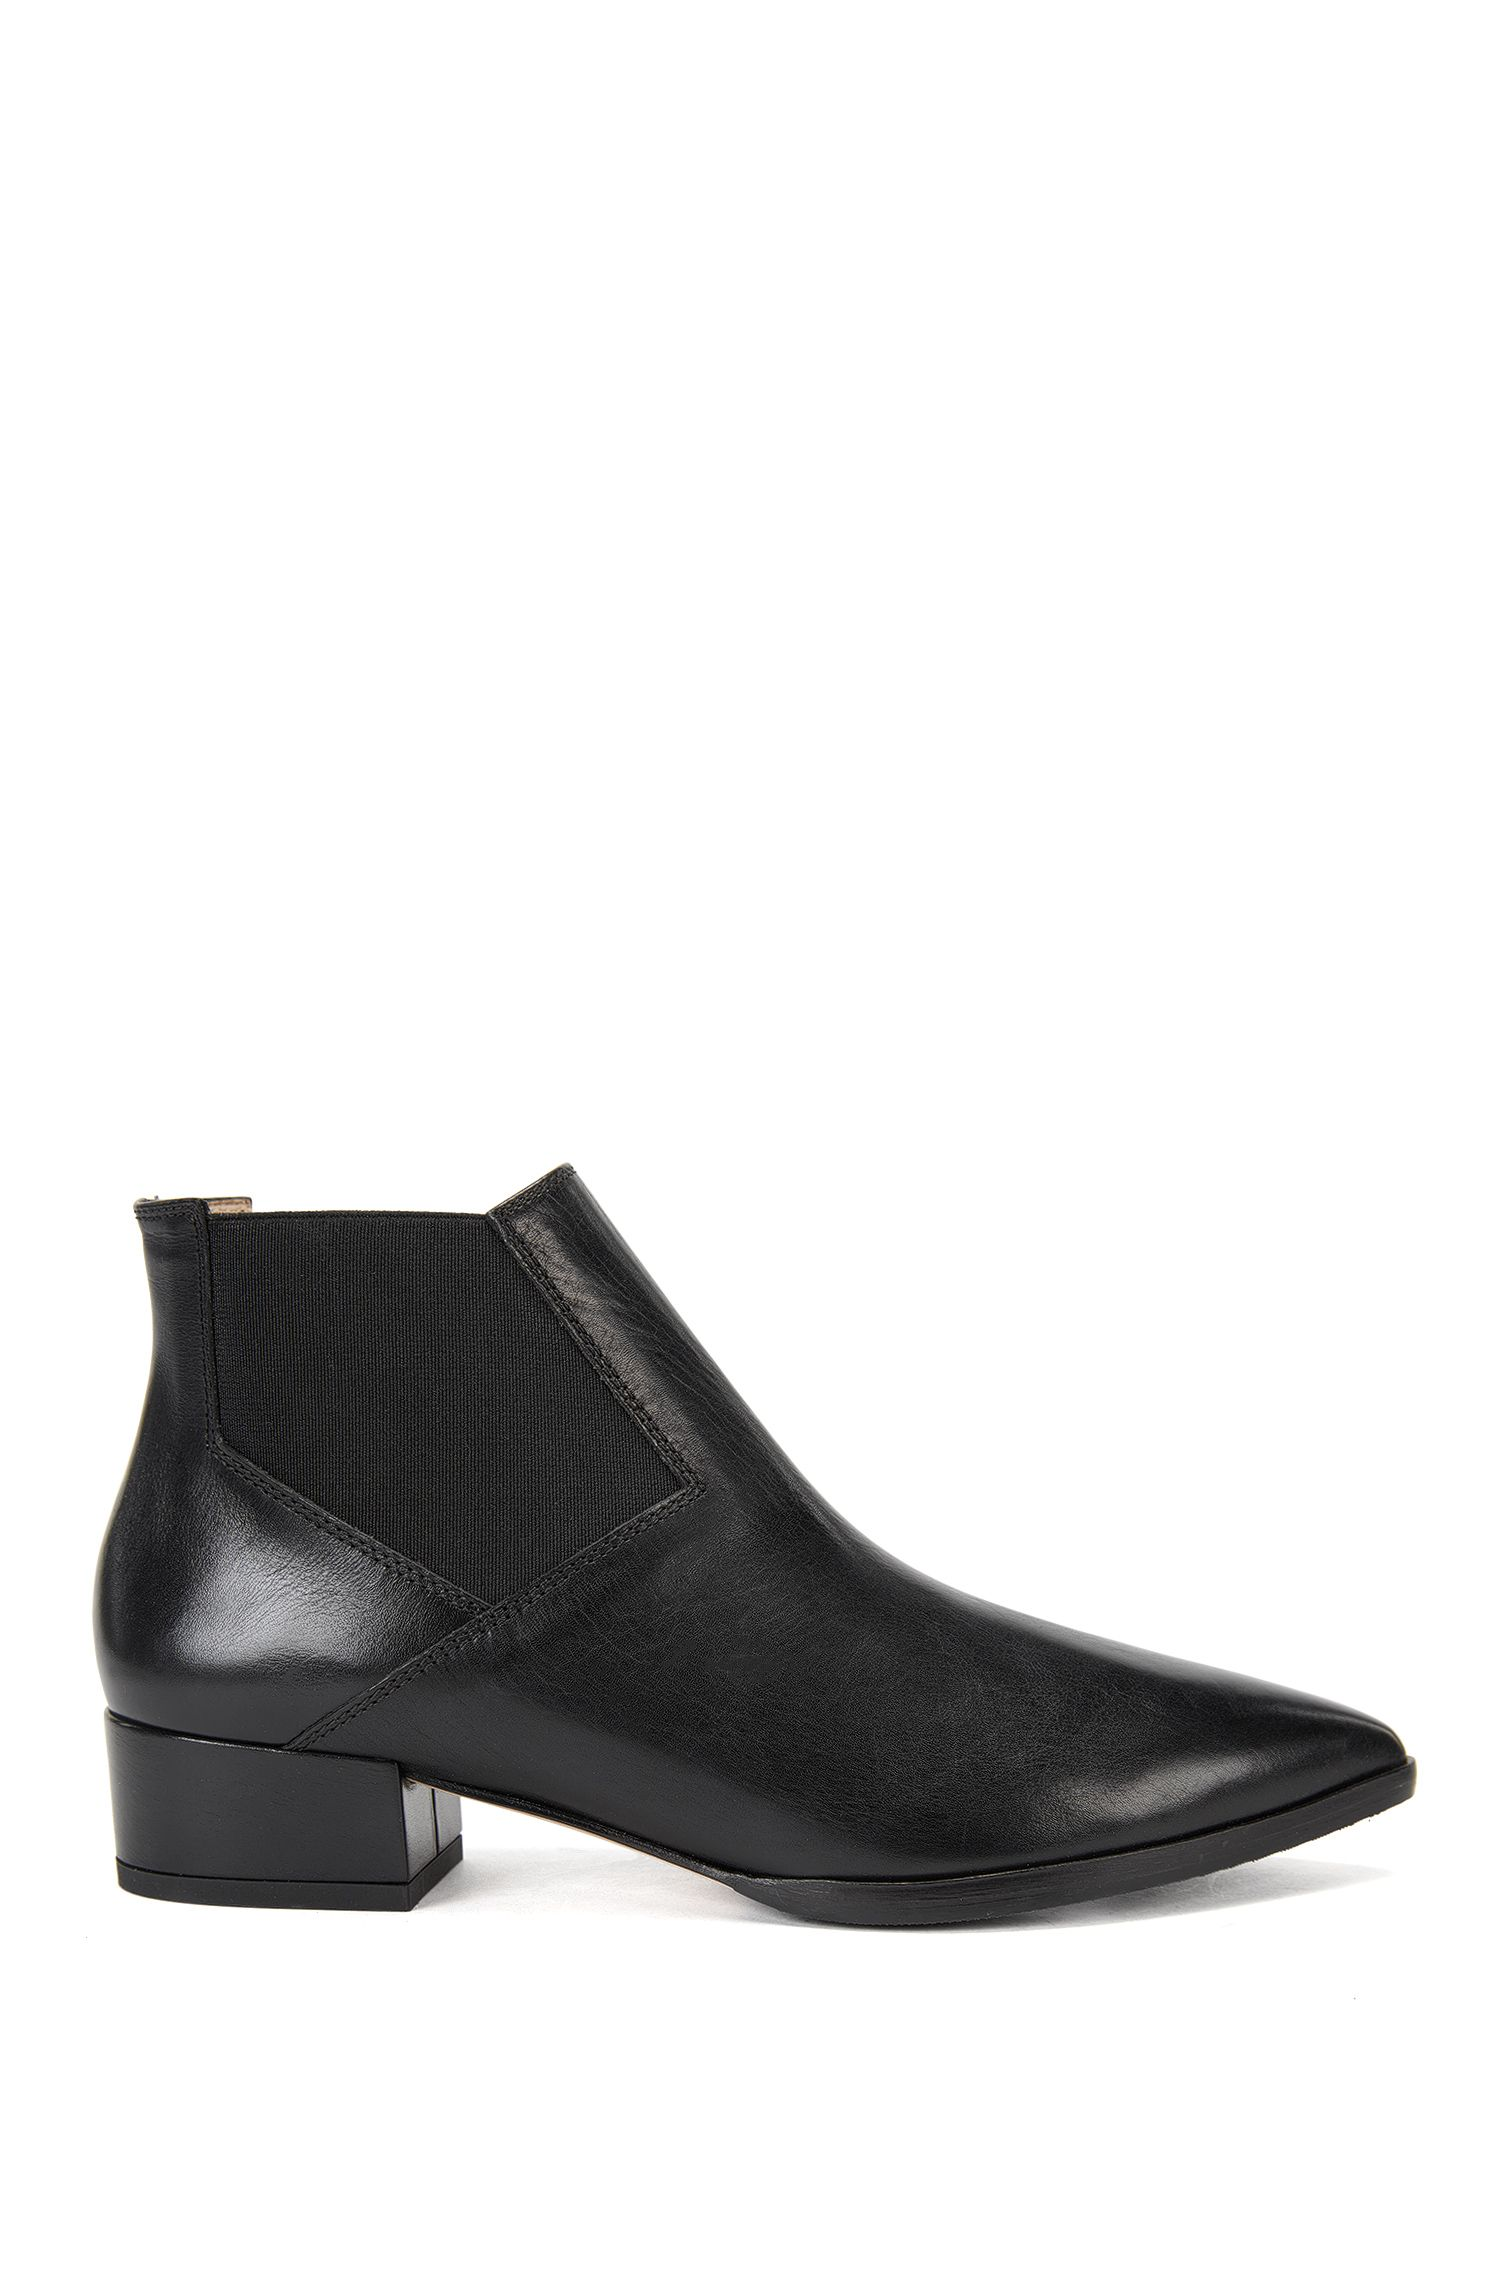 Leather Chelsea boots with pointed toe